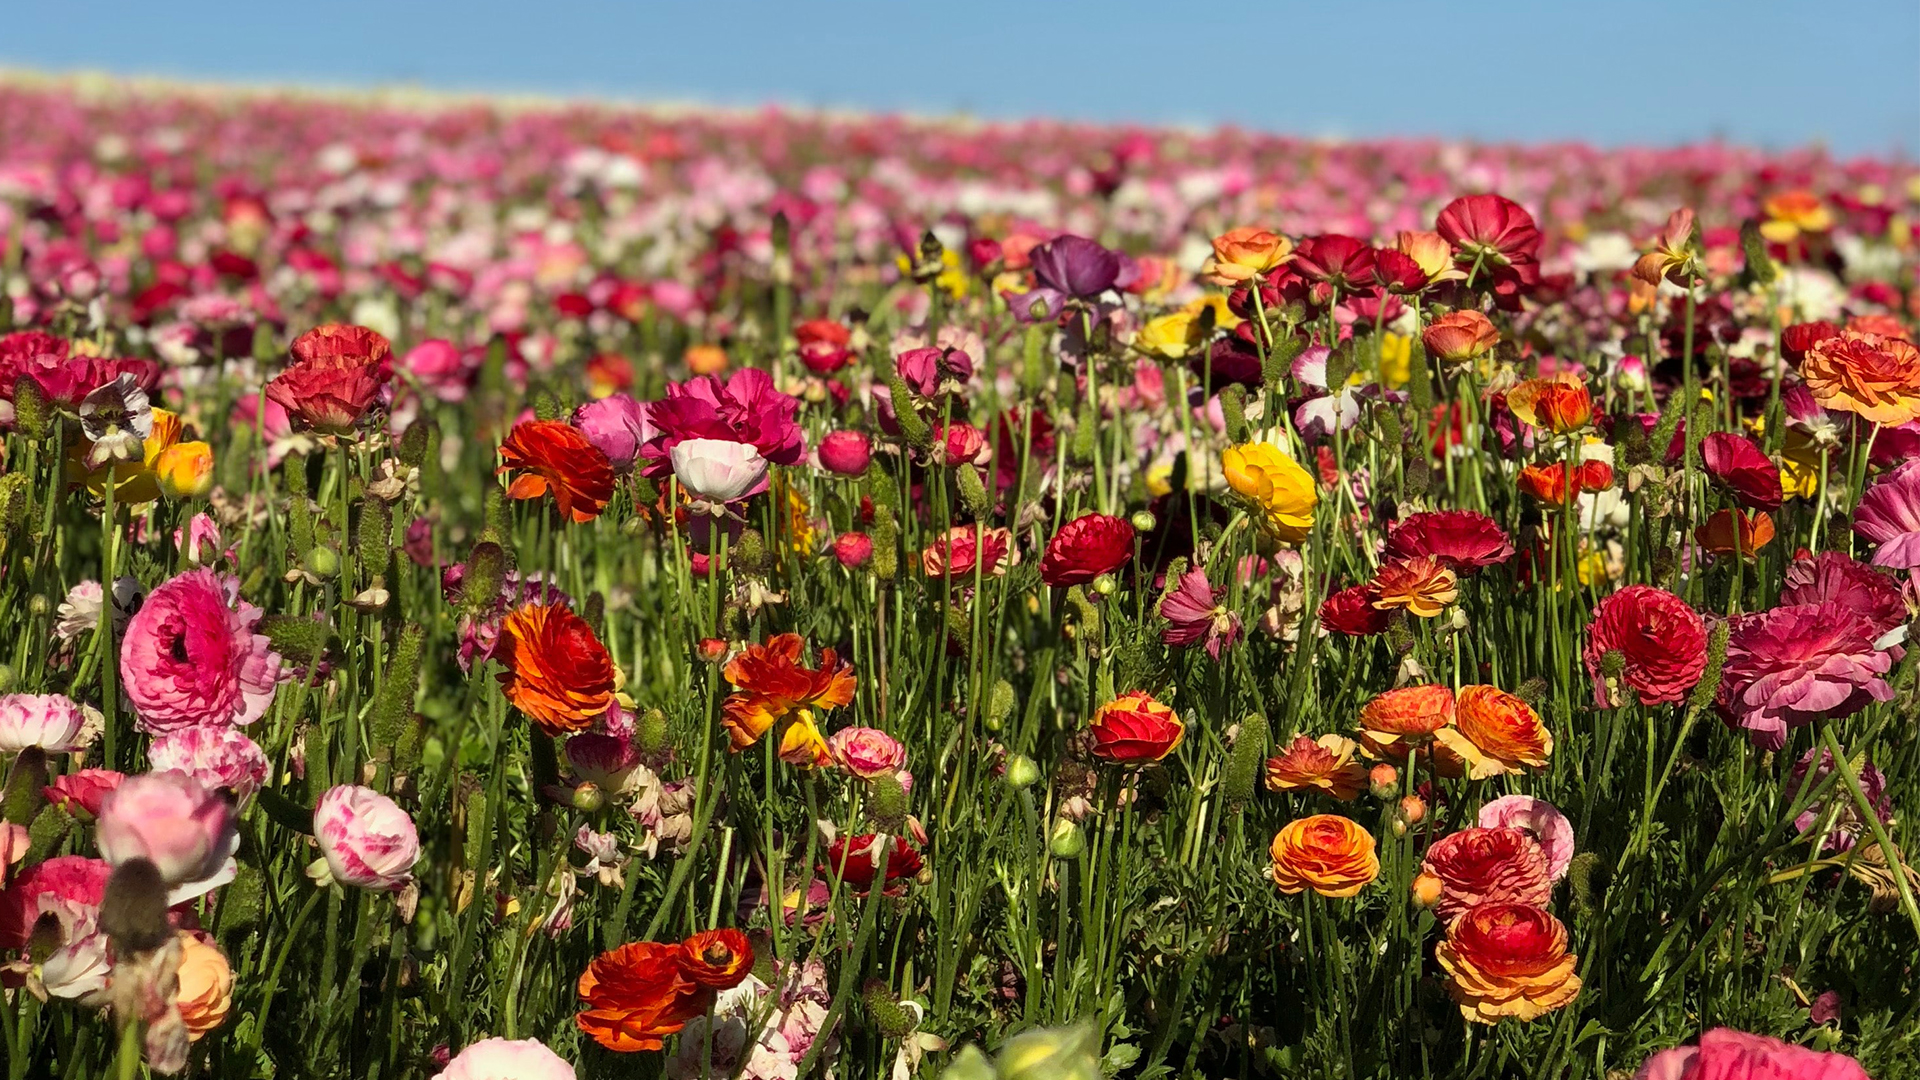 The Persian buttercups of Flower Fields